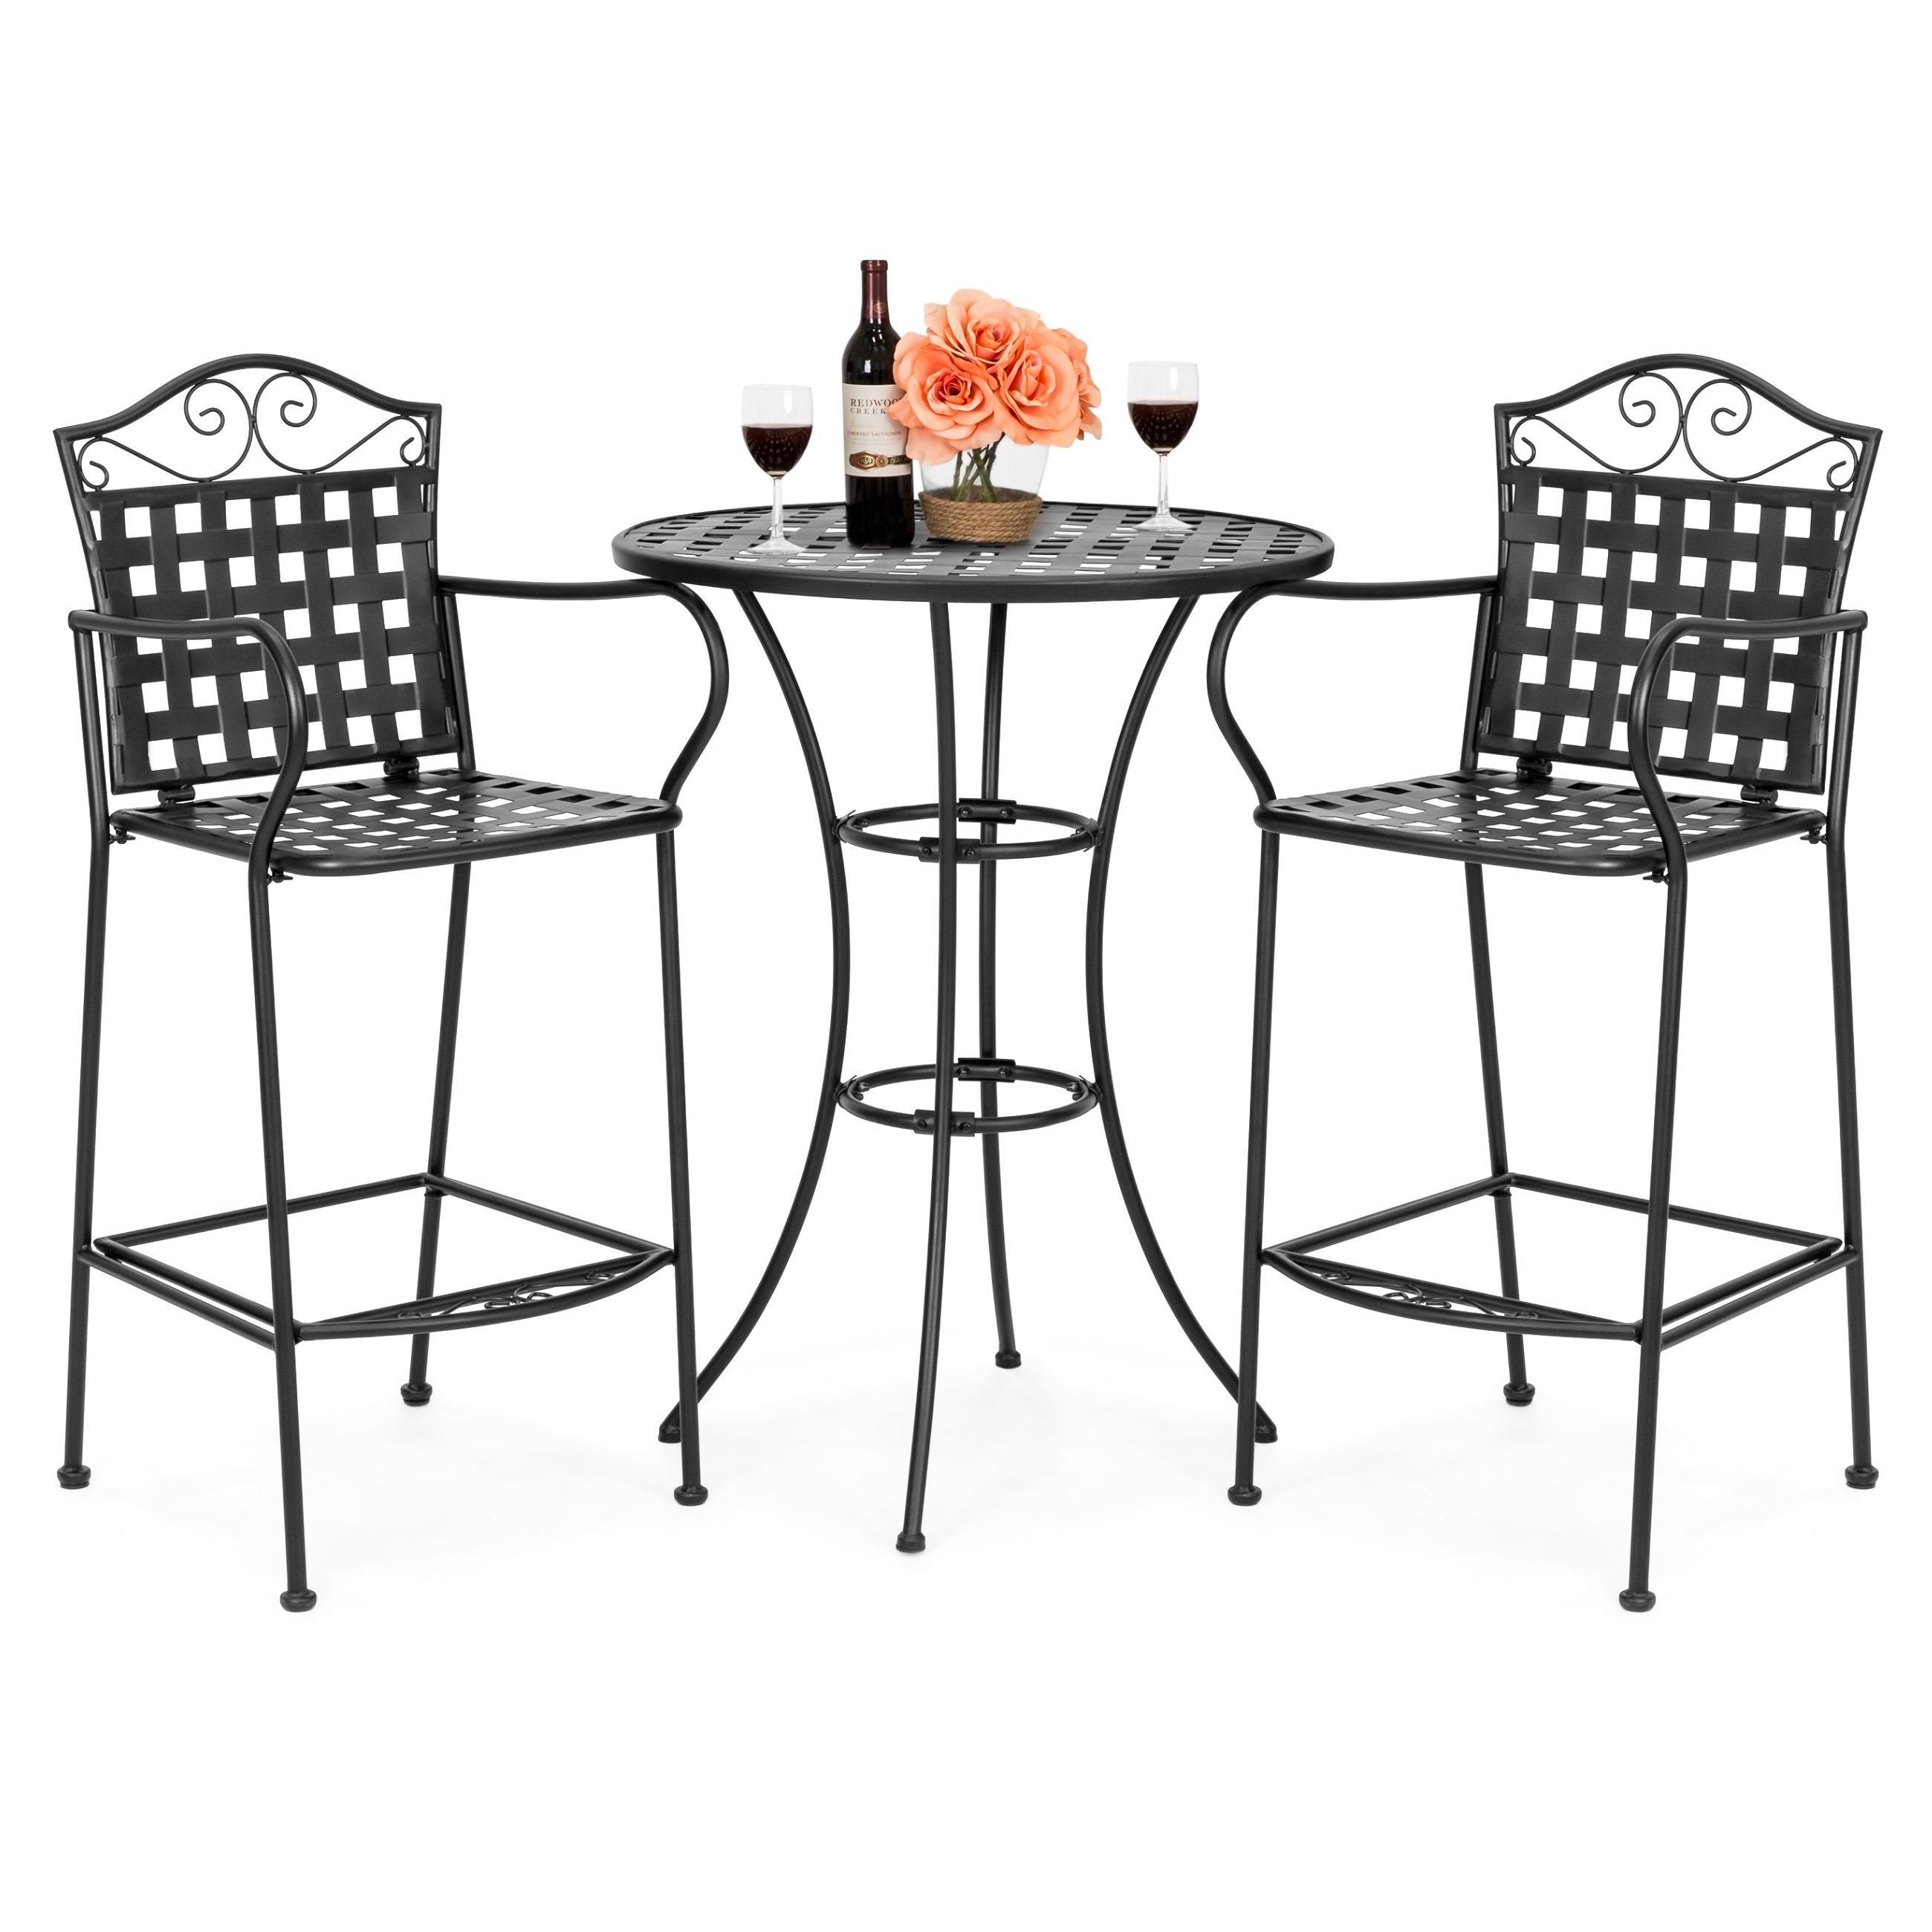 bestchoiceproducts best choice products piece woven pattern wrought iron patio accent table bar height bistro set white furniture company steel and glass side inch round